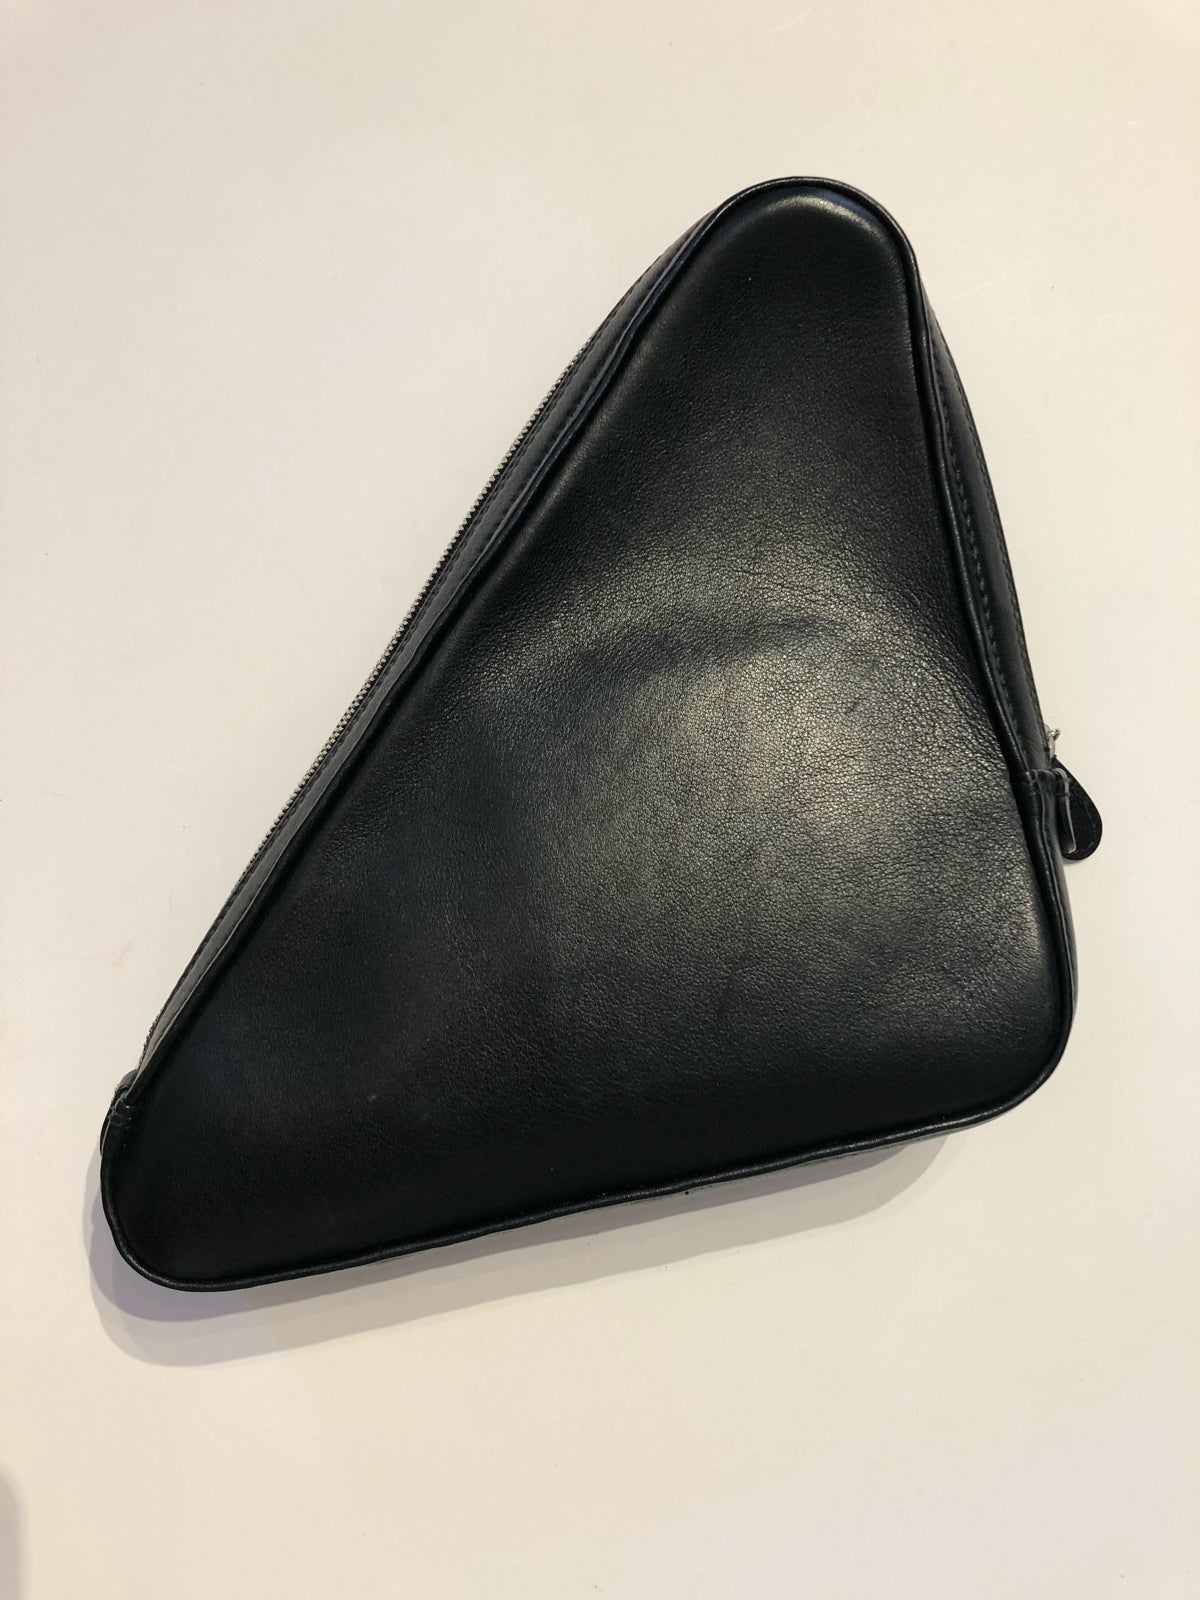 Image of BALENCIAGA TRIANGLE CLUTCH